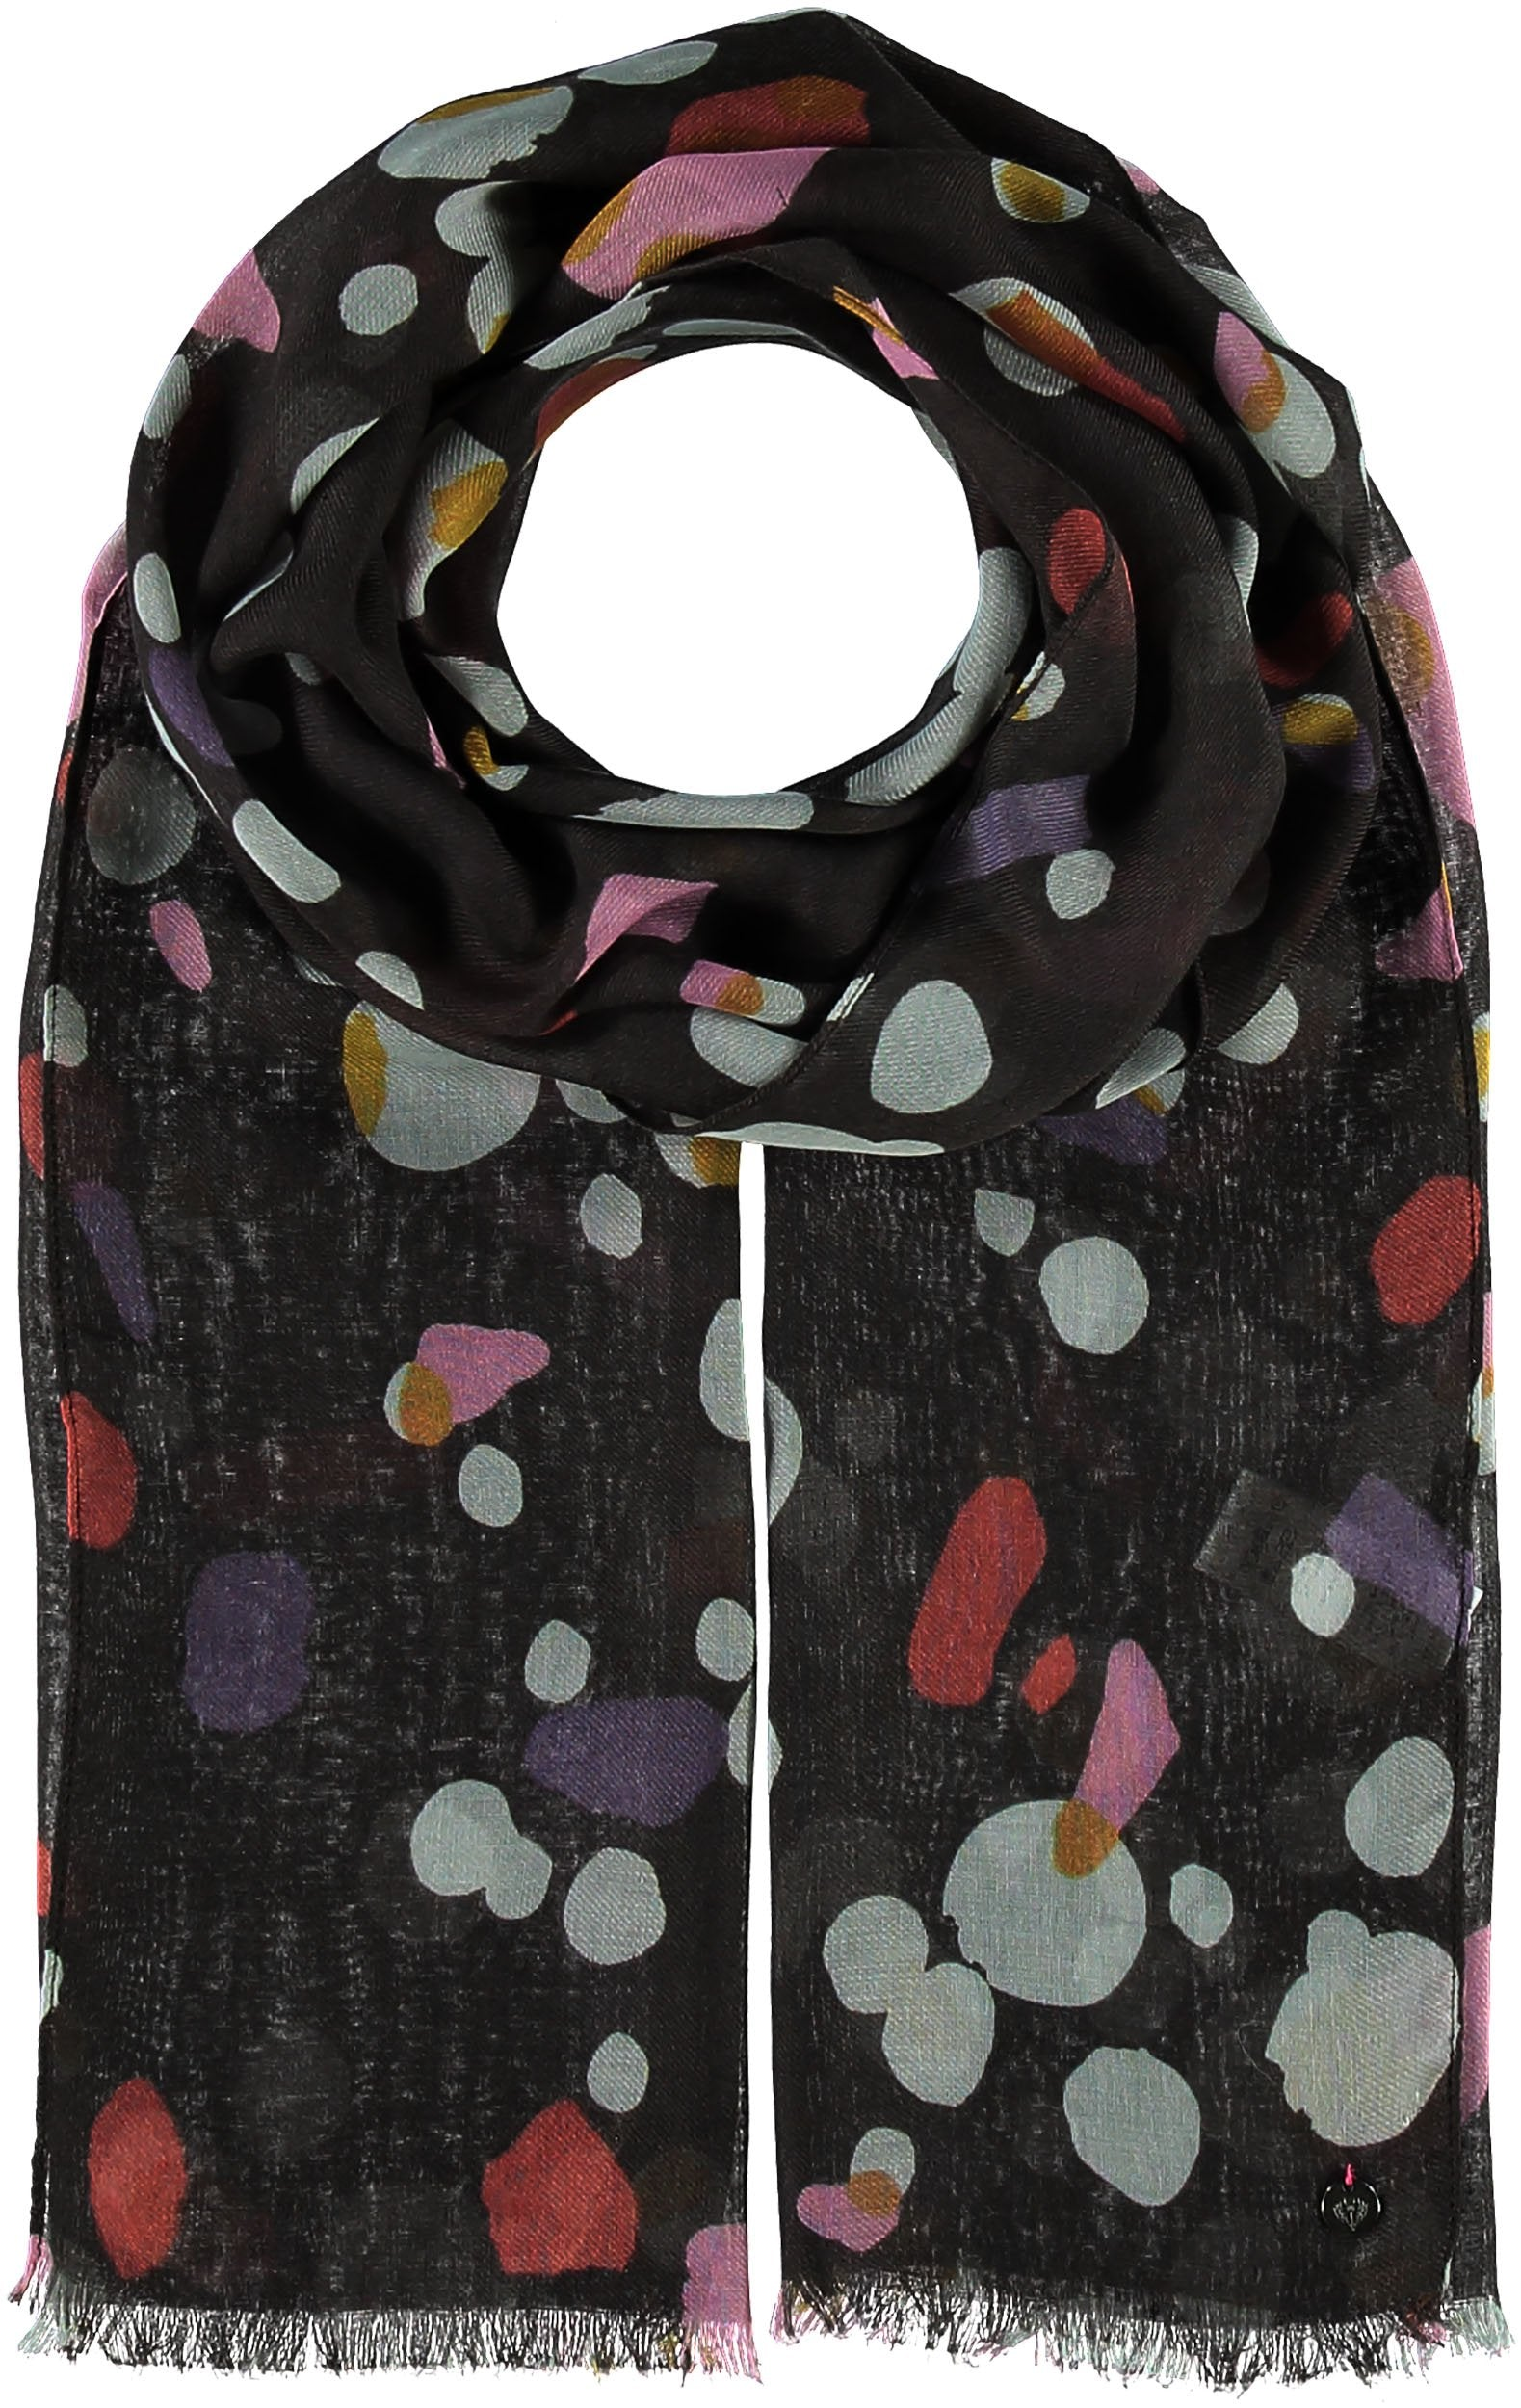 Cosmos Polyester Print Scarf